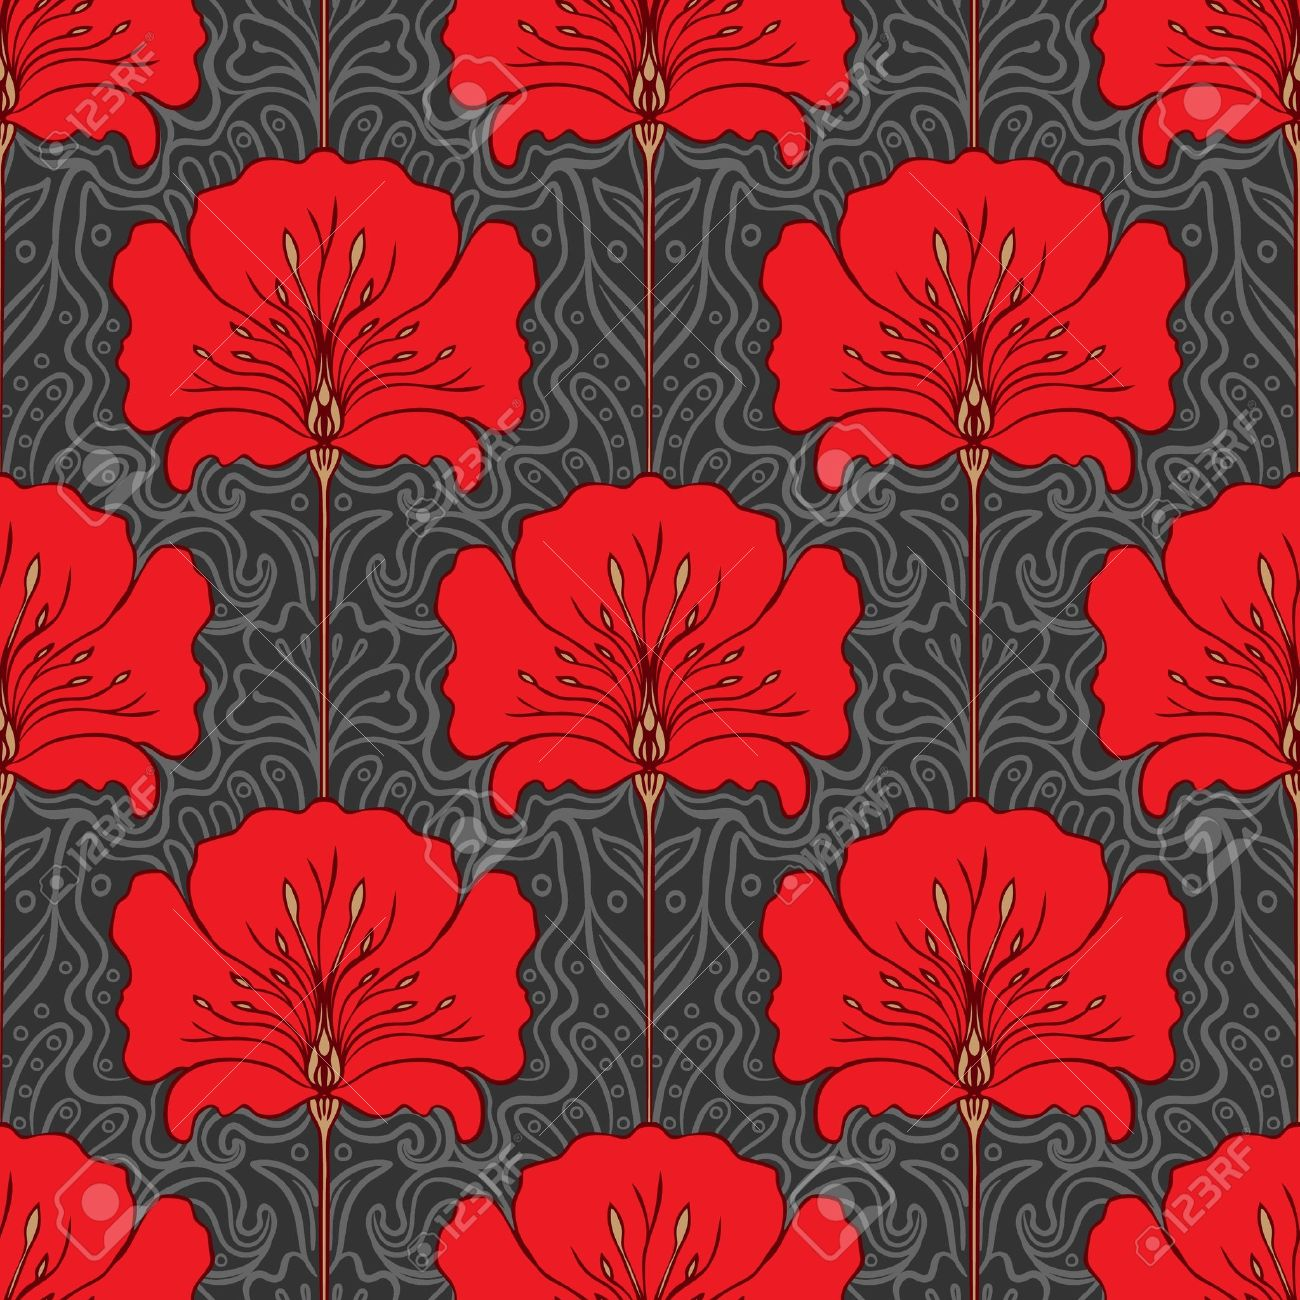 Colorful seamless pattern with red flowers on gray background. Art nouveau style. Stock Vector - 20394049